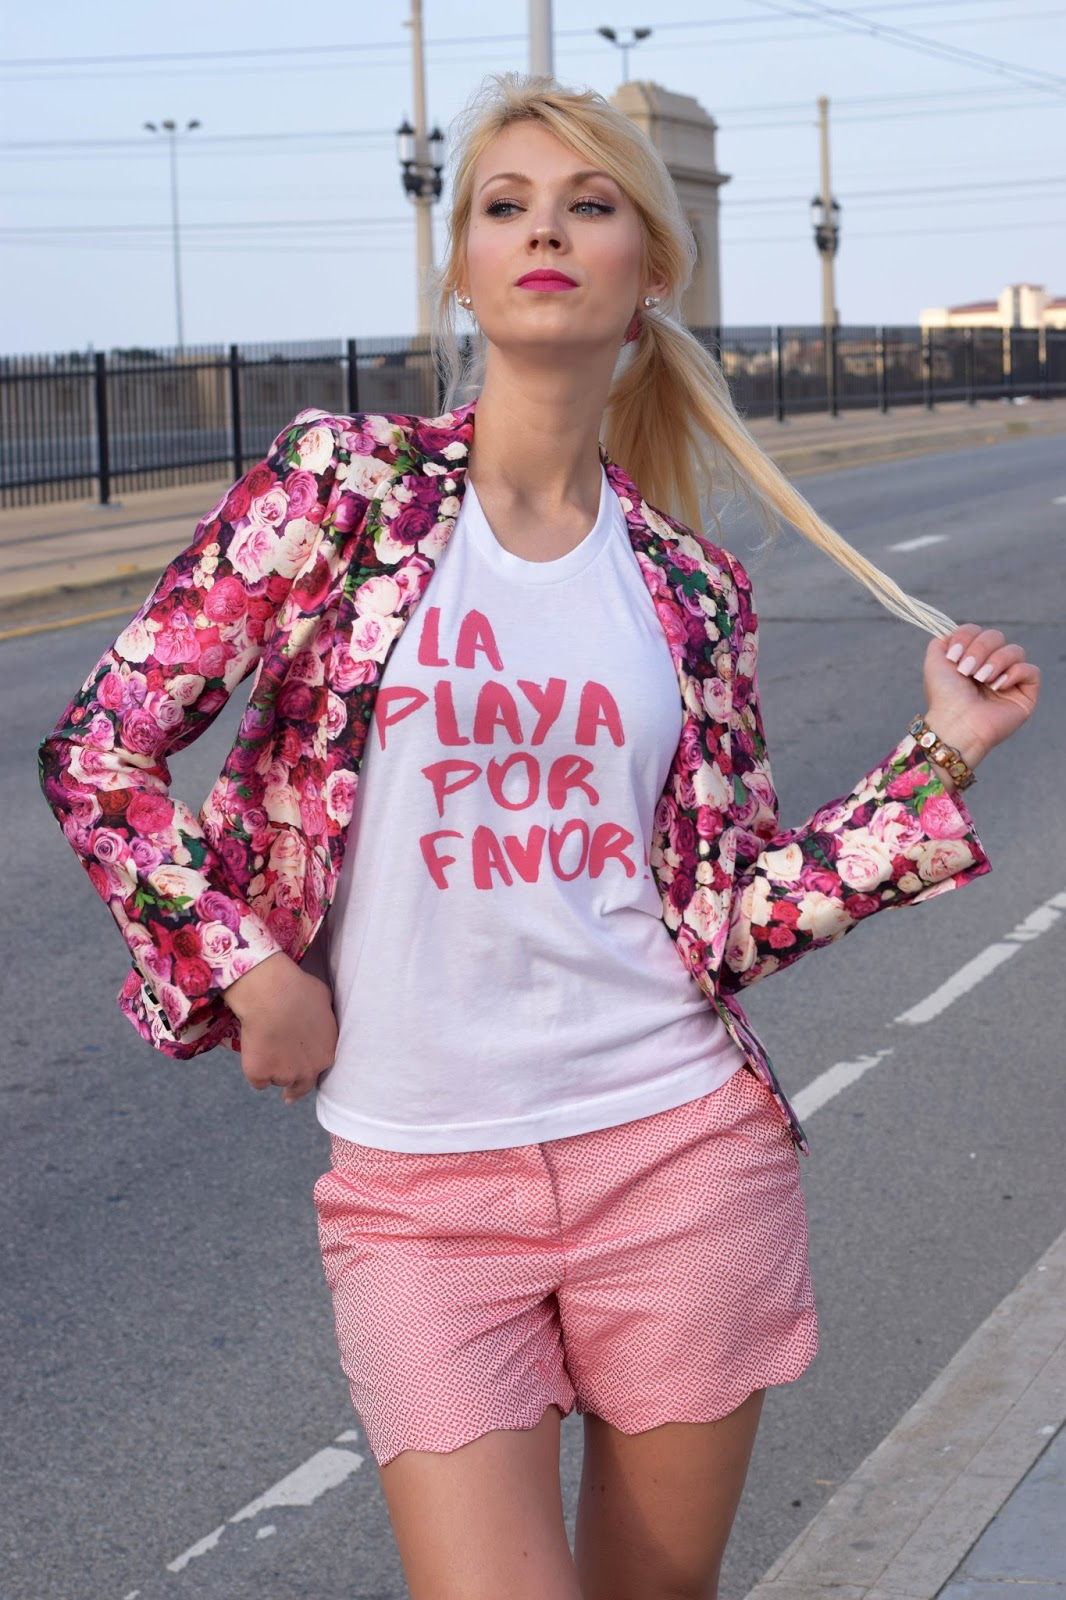 Qtee, customize shirt, customize, fashion designer, graphic tee, pink, kate spade, Sophia Webster, sparkling boots, rose blazer, la playa por favor